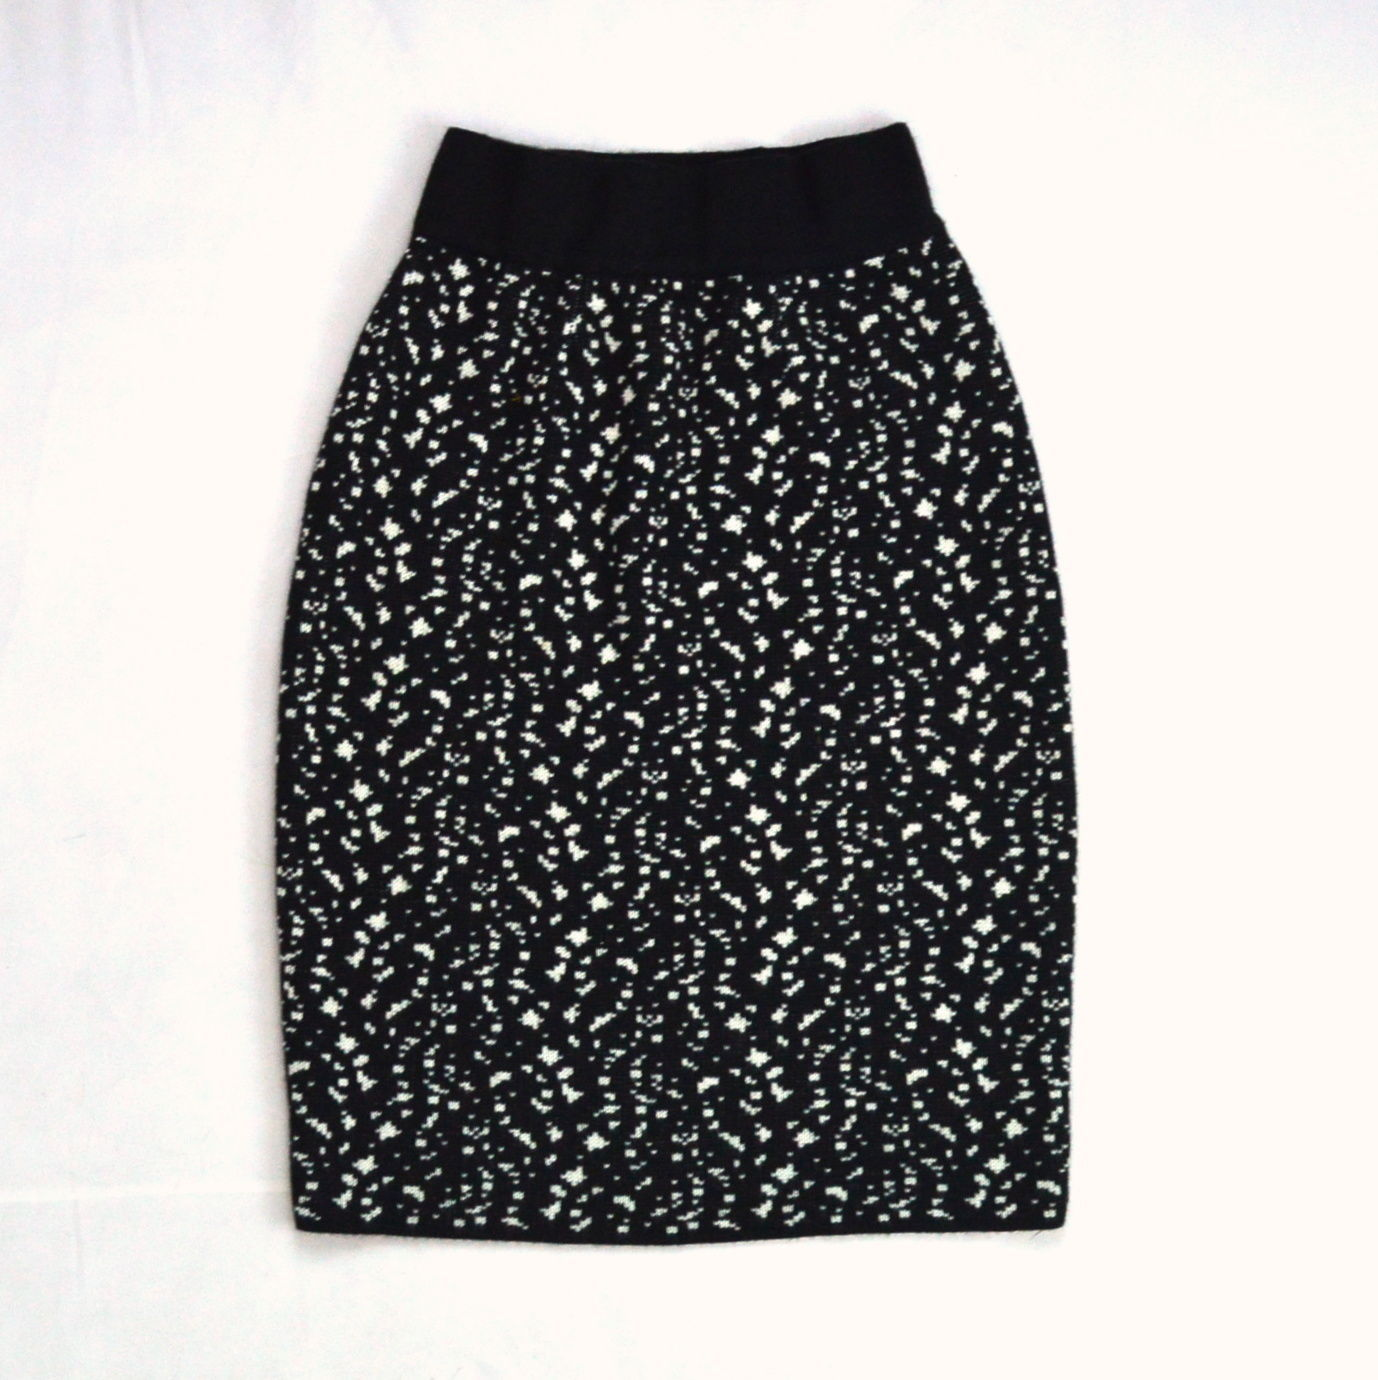 Primary image for Vtg FABRICE KAREL Made in FRANCE Black White Speckled Wool Knit Pencil Skirt XS